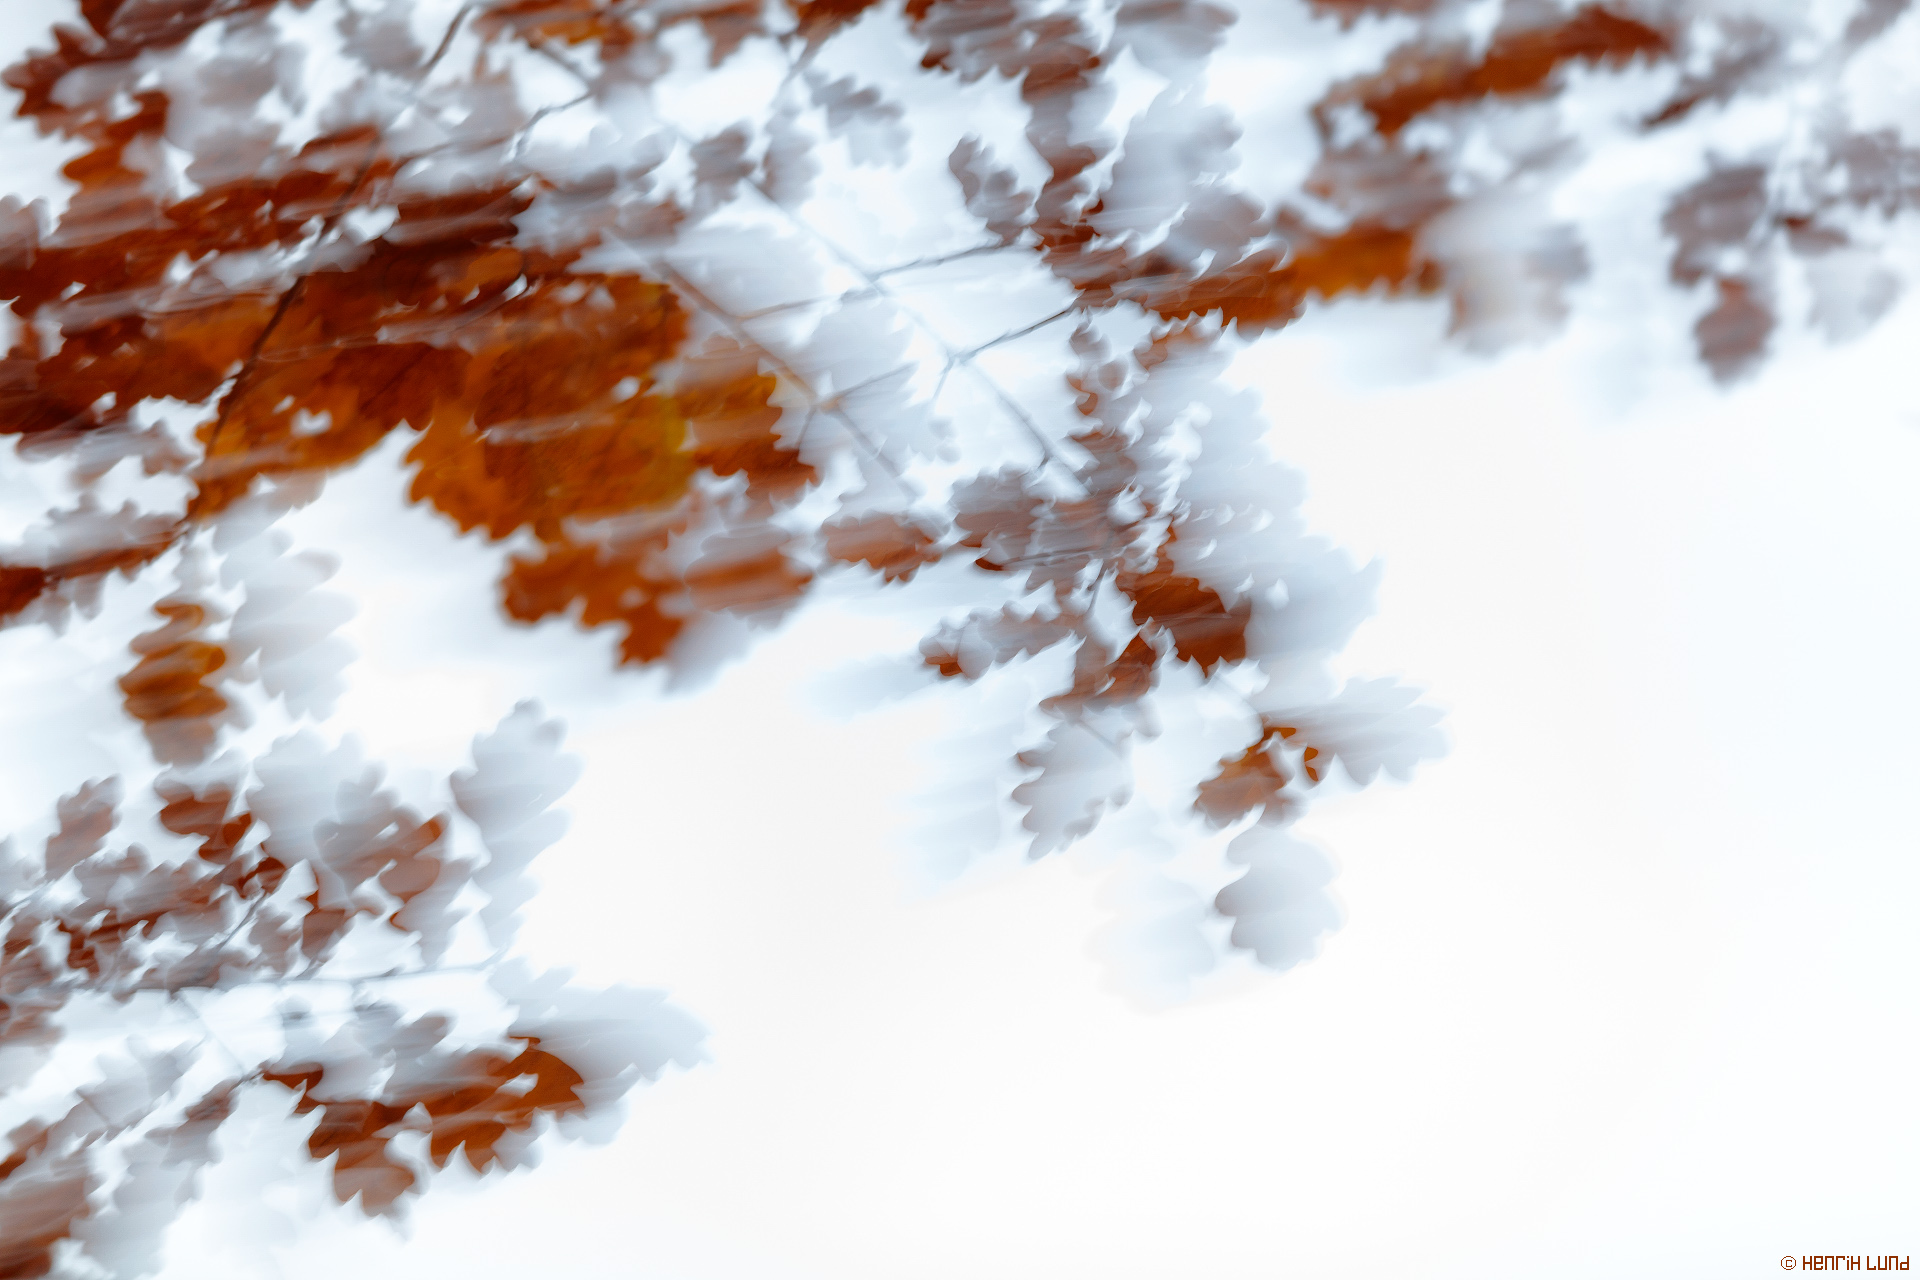 The last oakleaves still hanging for the season. Panning with longer exposure. Lappträsk, Finland, October 2015.